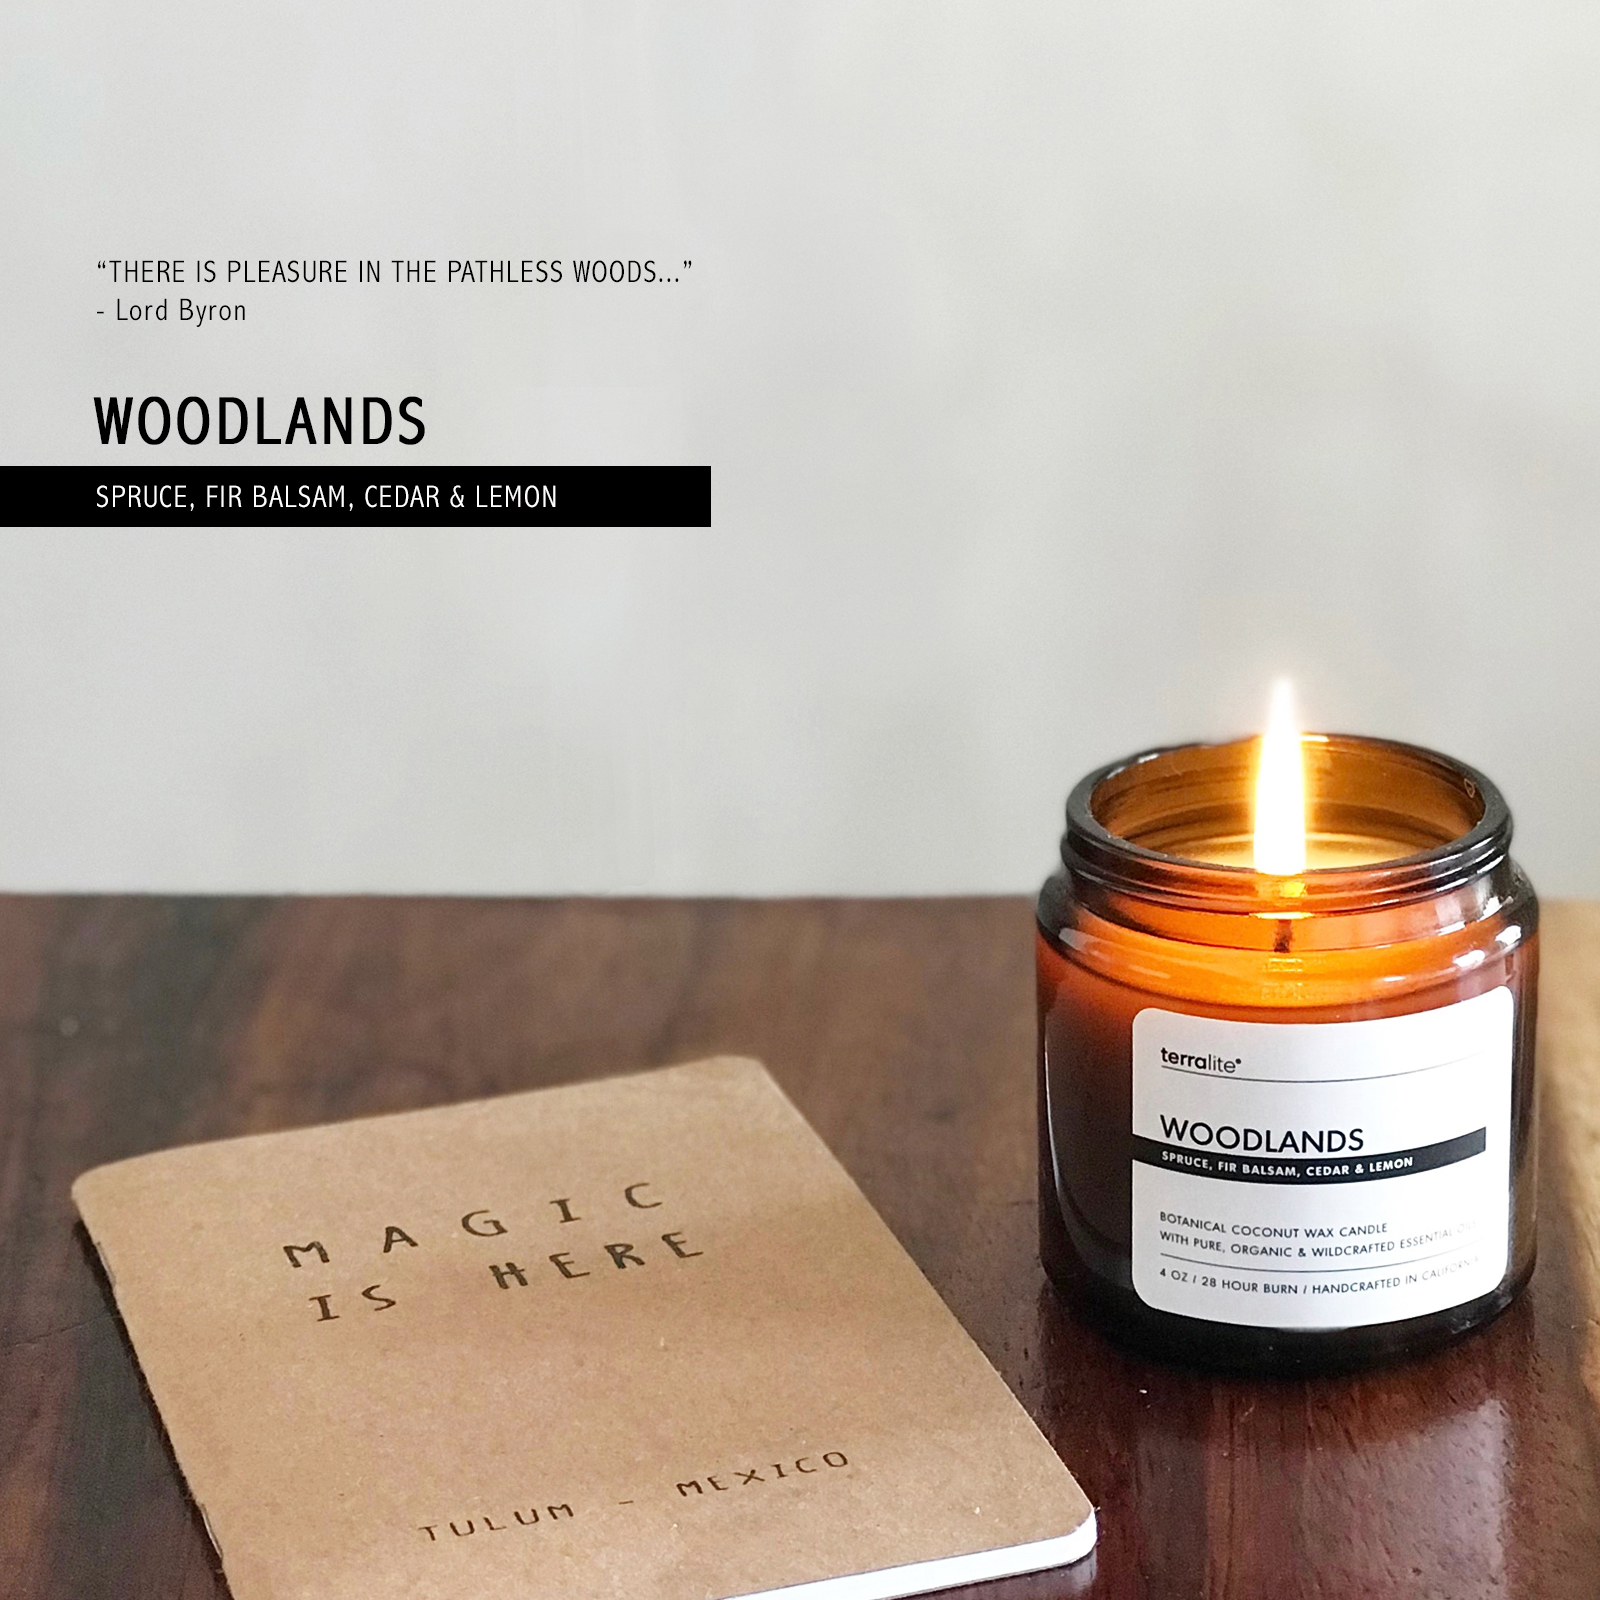 Woodlands Coconut Wax Candle made with essential oils of spruce, fir balsam, cedarwood, and lemon in an amber glass jar.